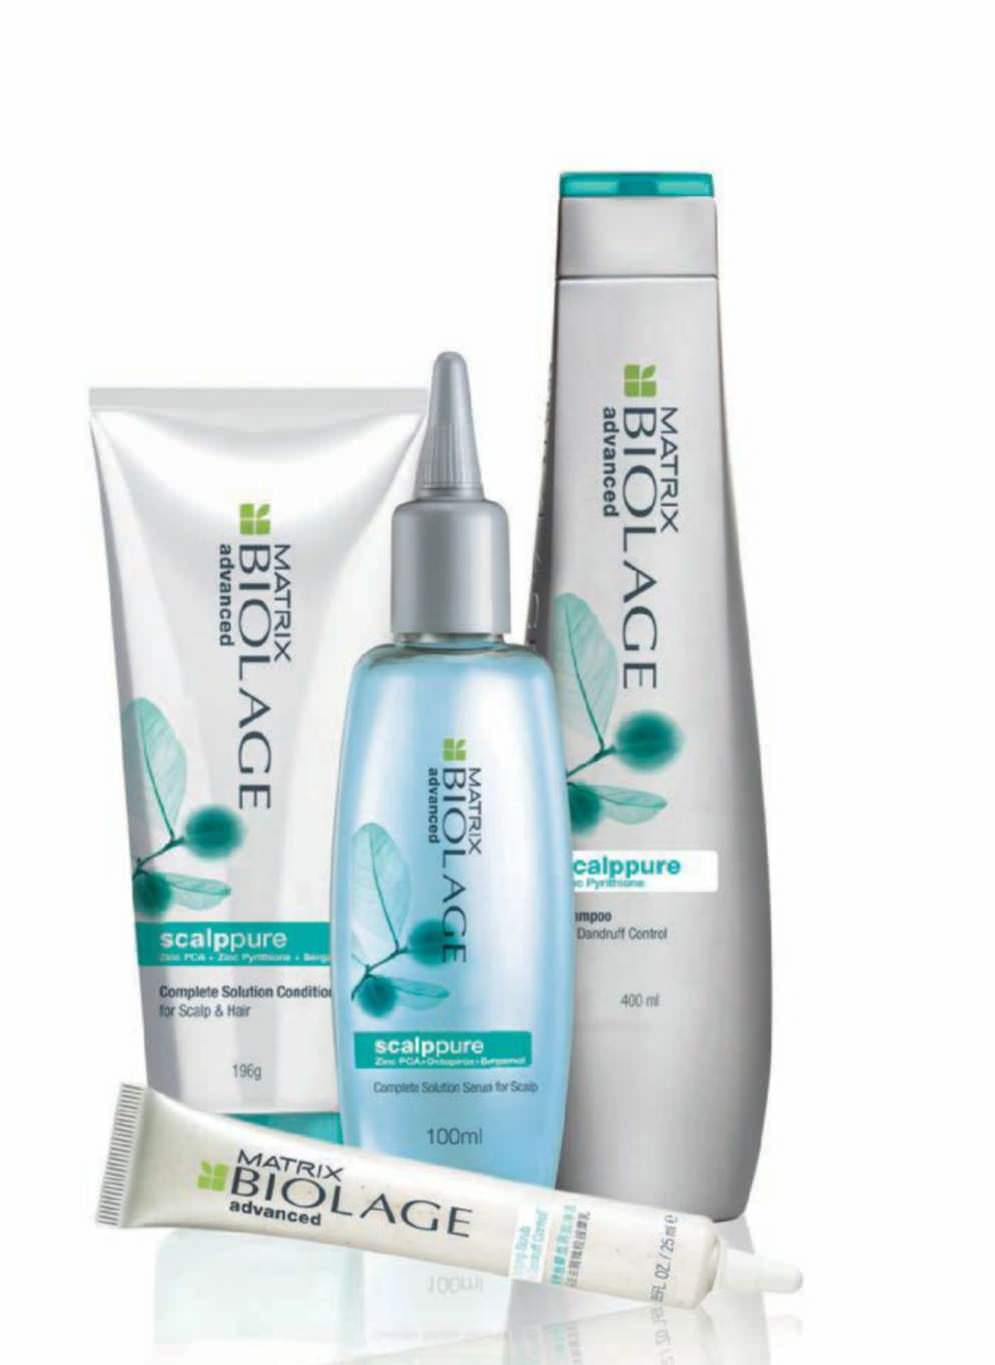 Biolage Advanced Scalppure: expert Care For Your Scalp